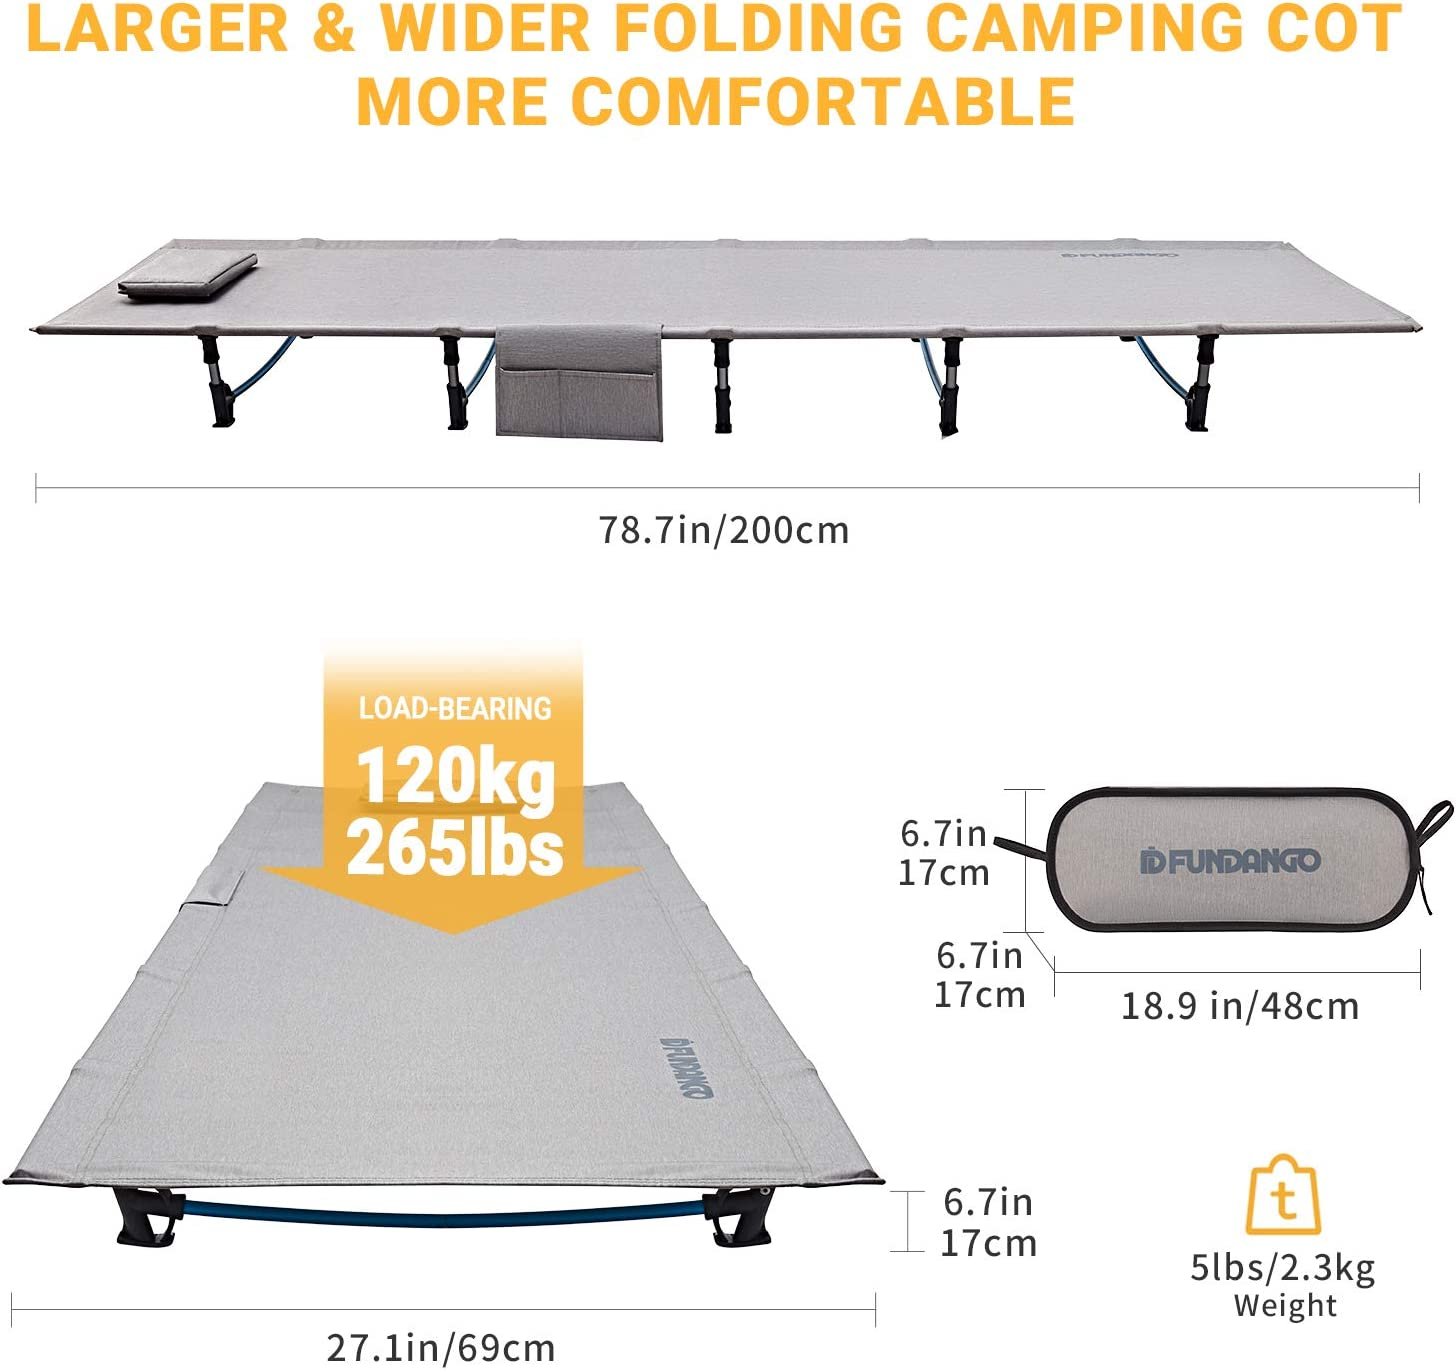 Support 265lbs Backpacking Camping 78.7 x 27.1 x 6.7/'/' // 5lbs Hiking Indoor Travel Office Nap Outdoor FUNDANGO Extra Long Ultralight Folding Compact Camping Cot Bed Side Pocket for Adult